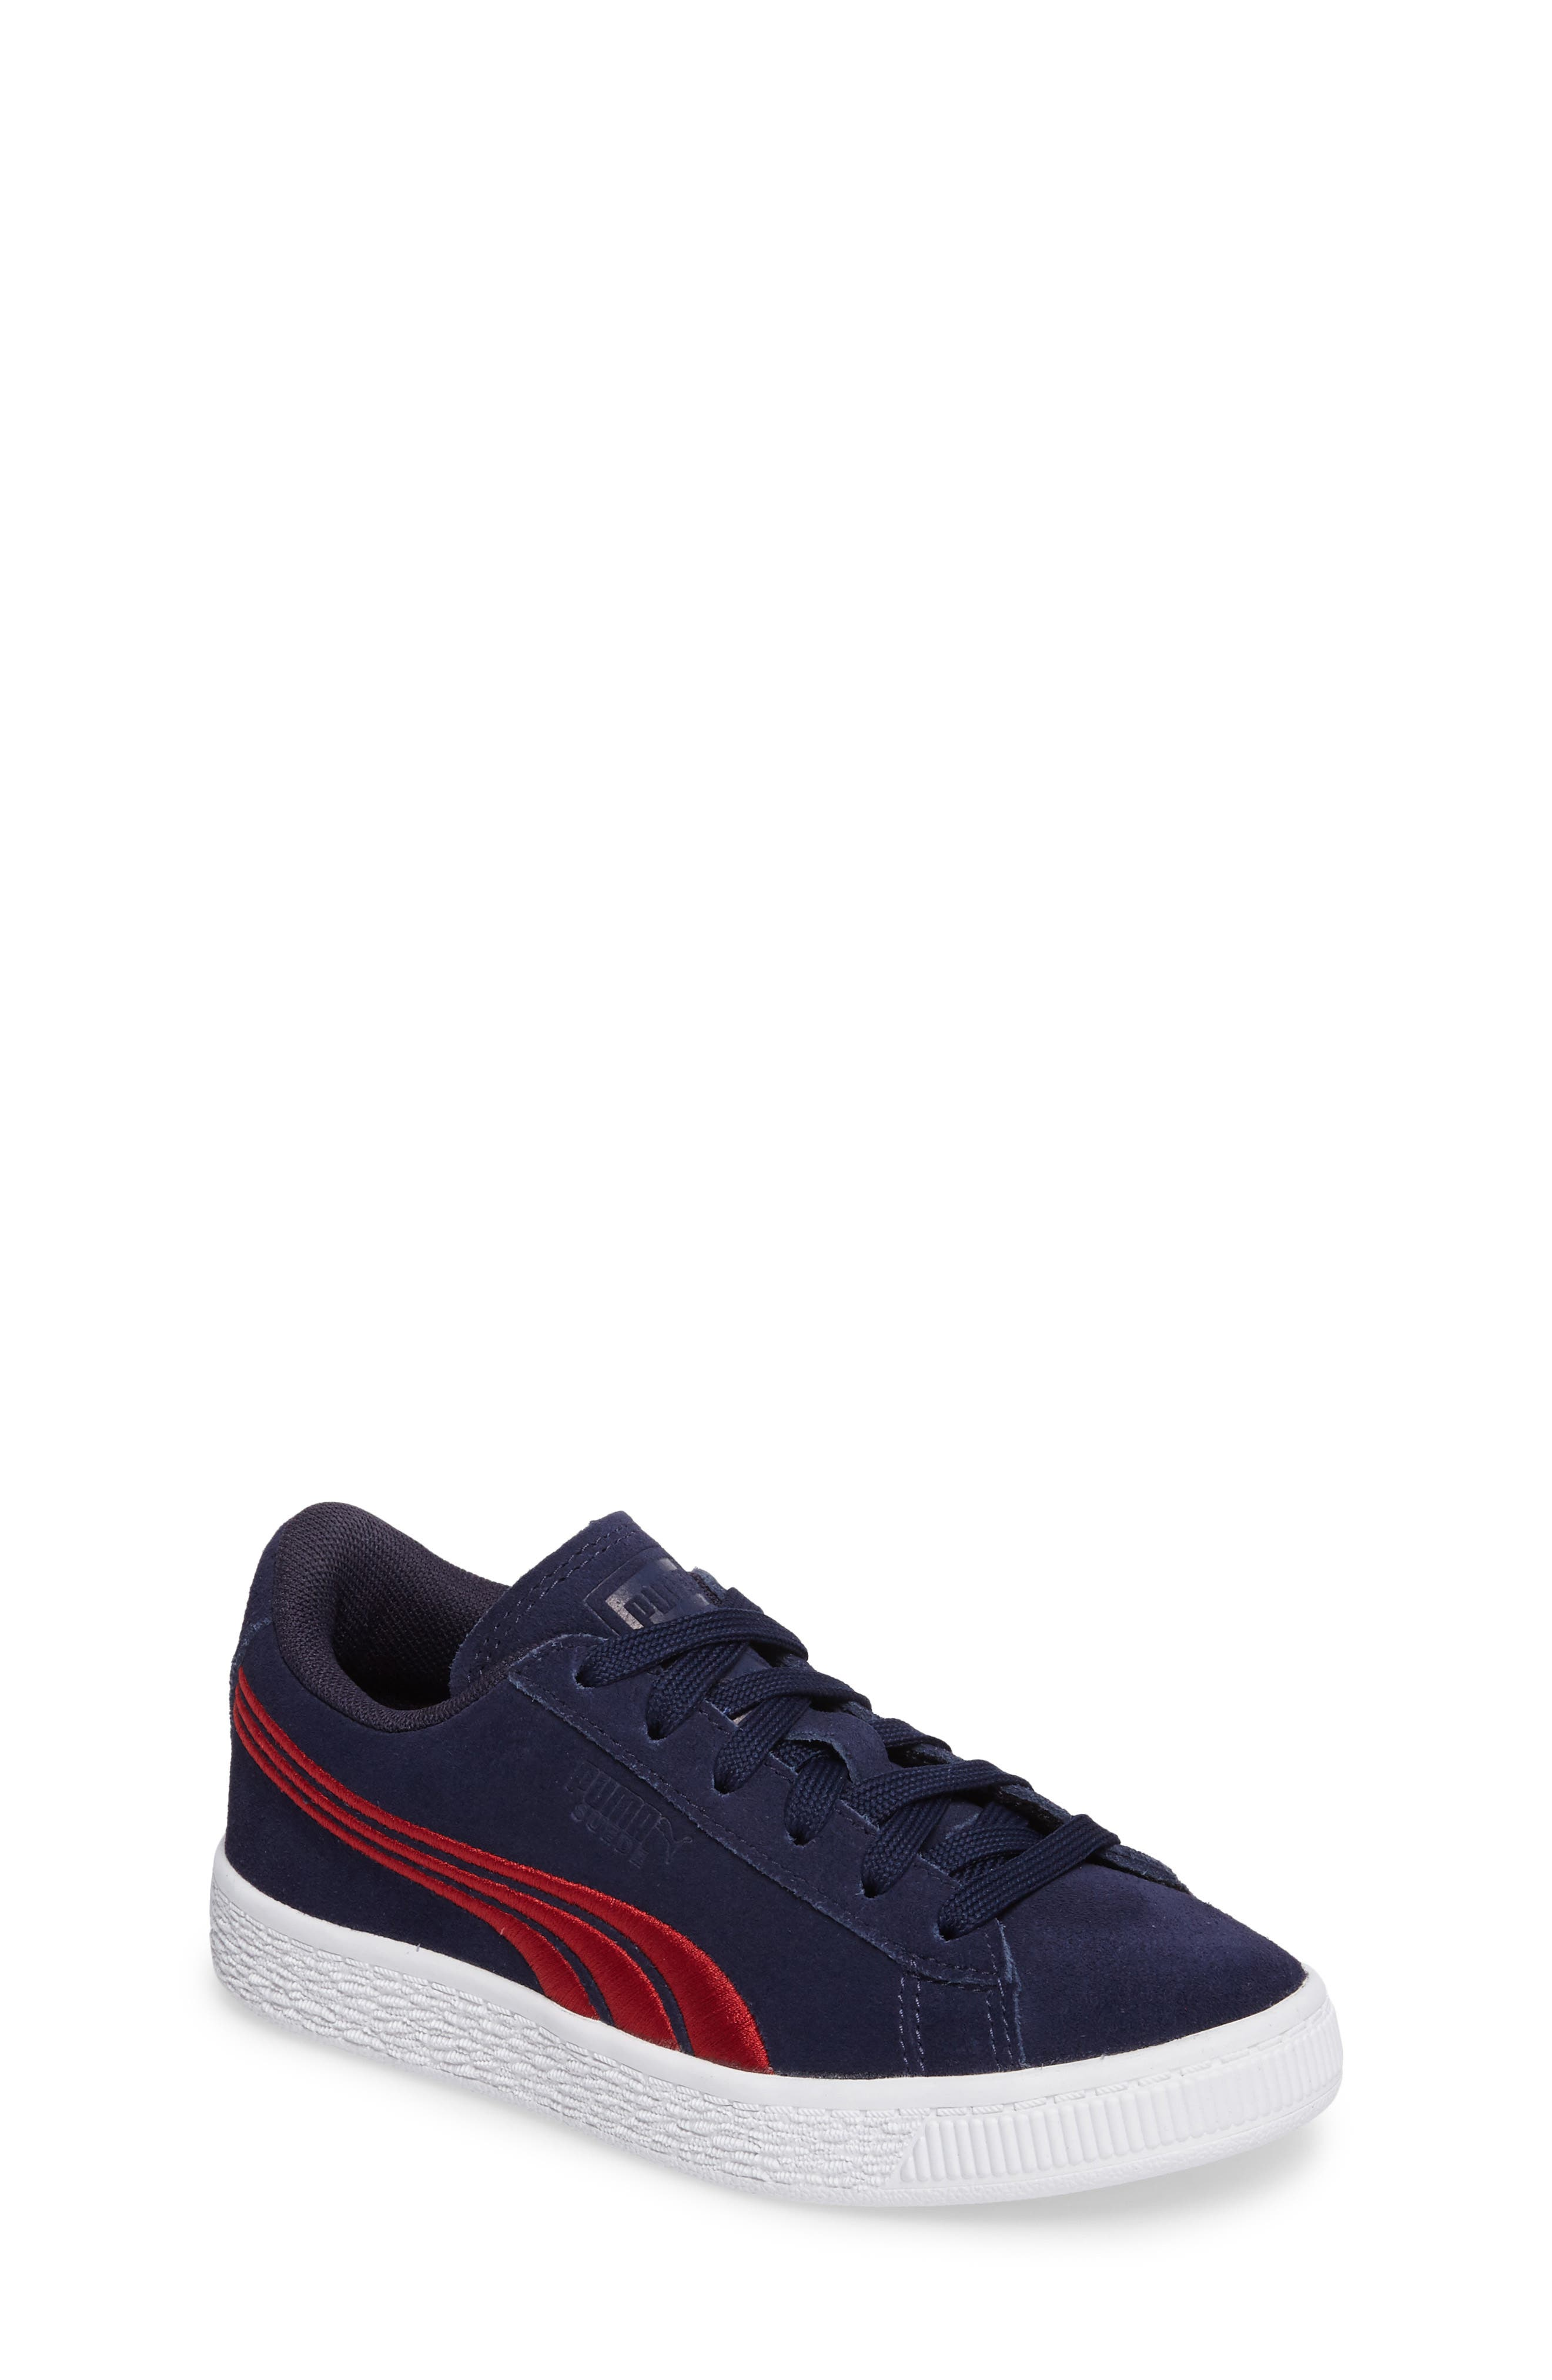 PUMA Suede Classic Badge Sneaker (Toddler, Little Kid & Big Kid)